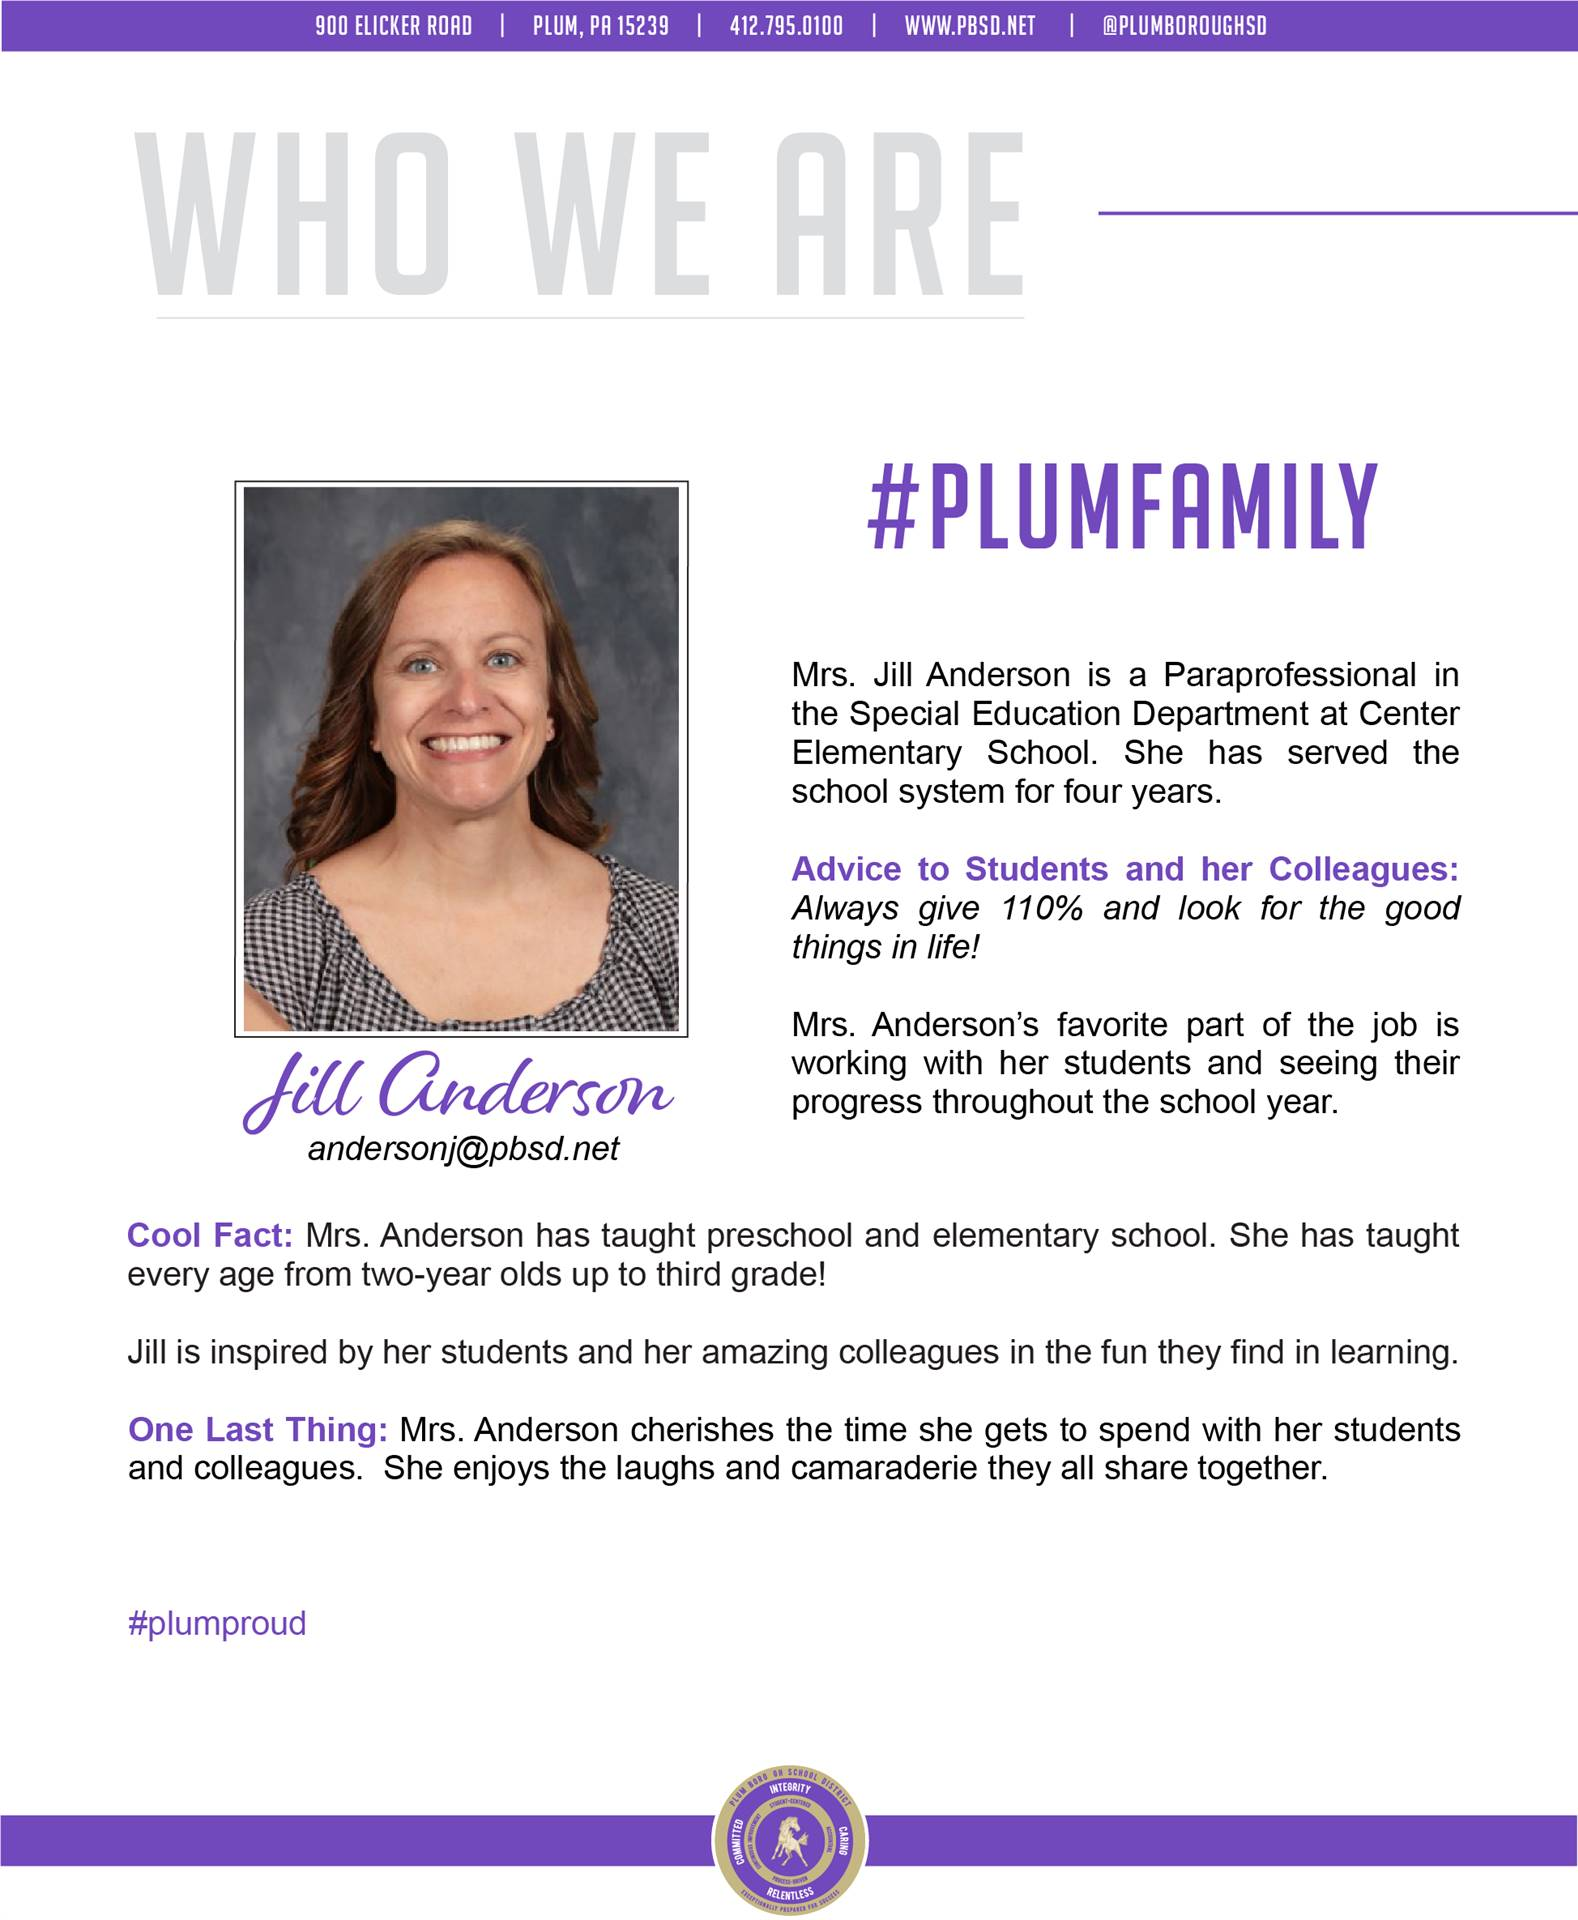 Who We Are Wednesday features Jill Anderson.